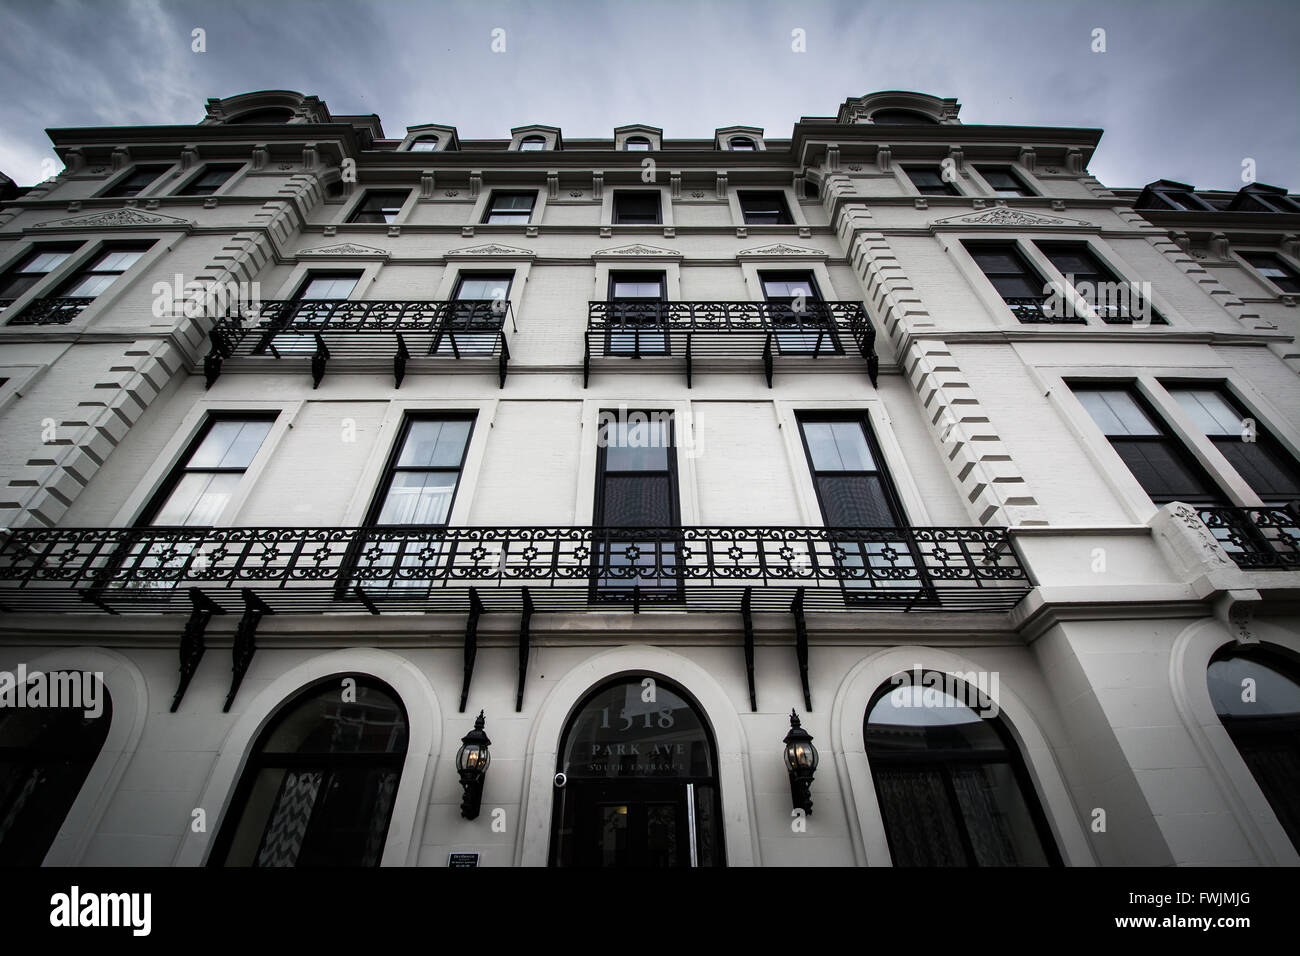 Apartment building in Bolton Hill, Baltimore, Maryland. - Stock Image